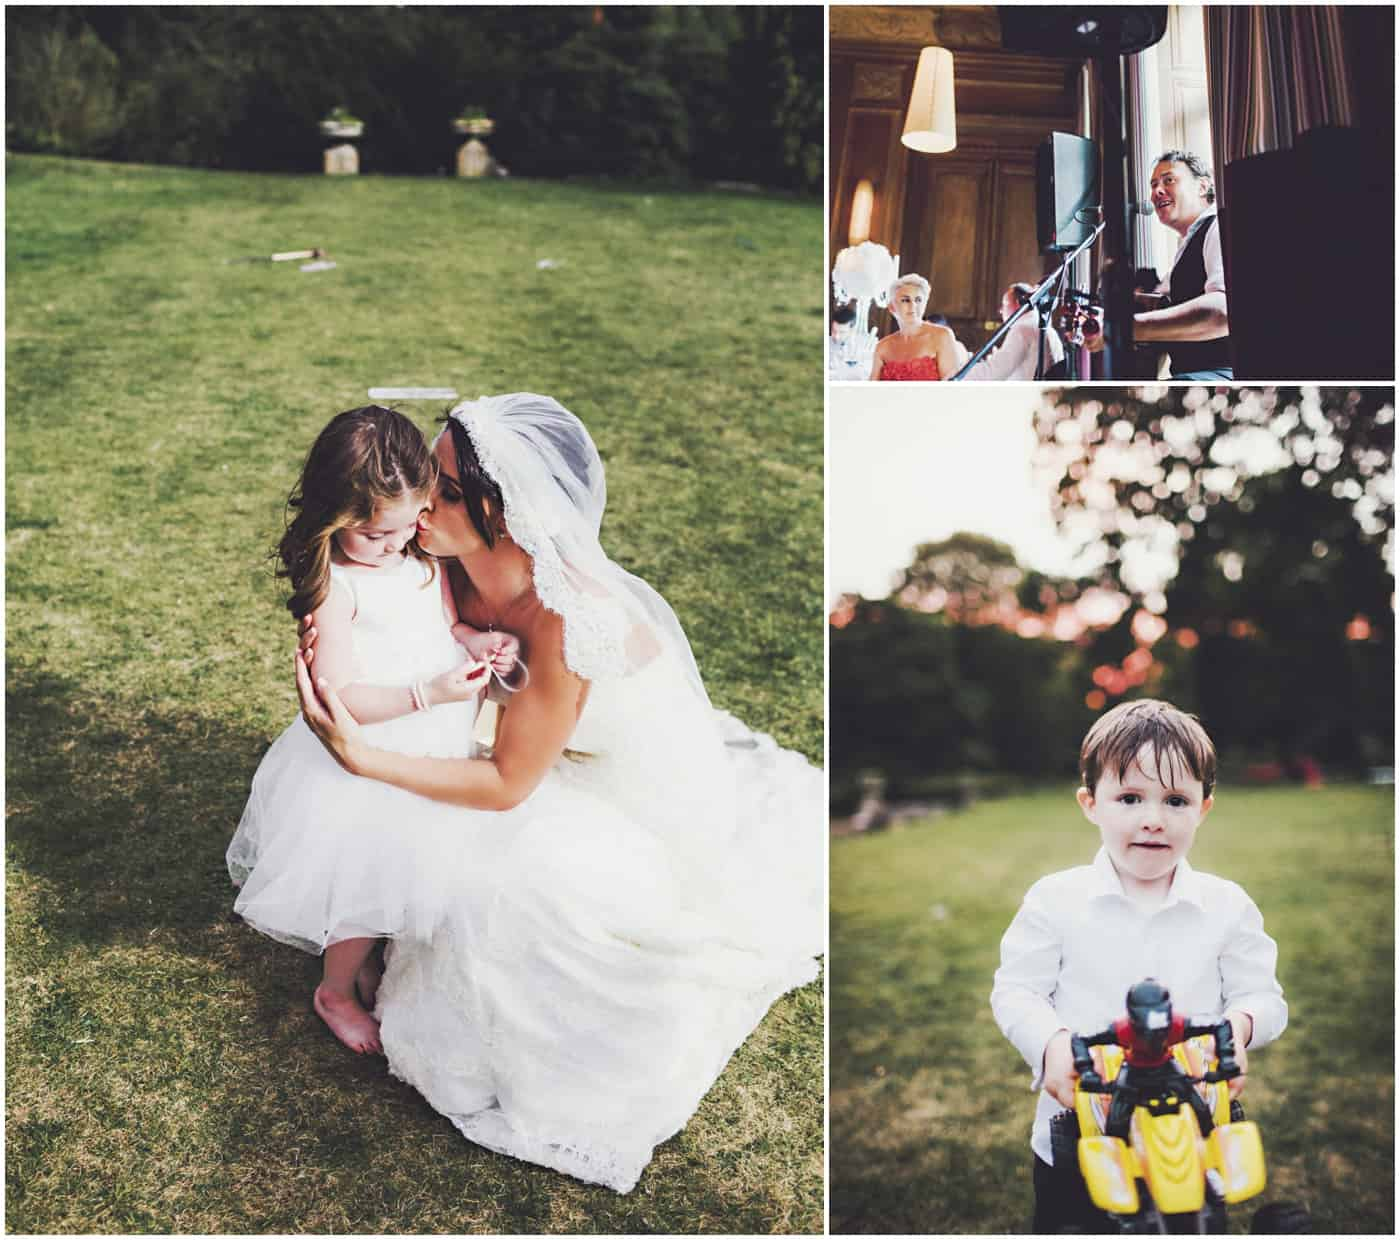 Claudia + Ben - Cowley Manor Wedding